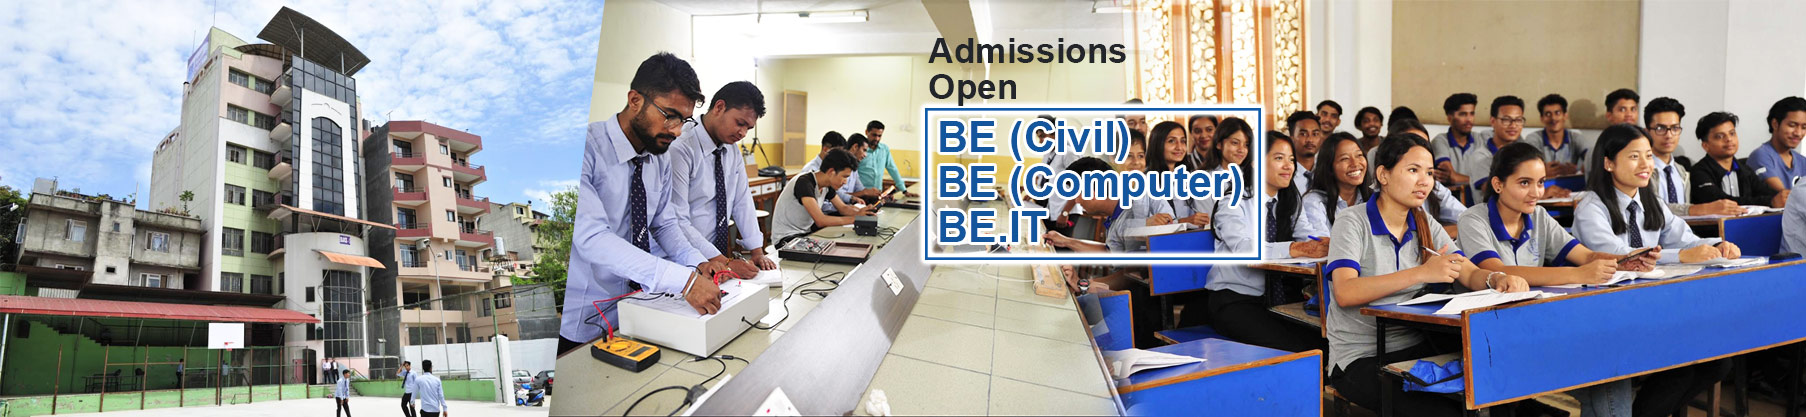 Admissions open for BE programs at Everest Engineering College